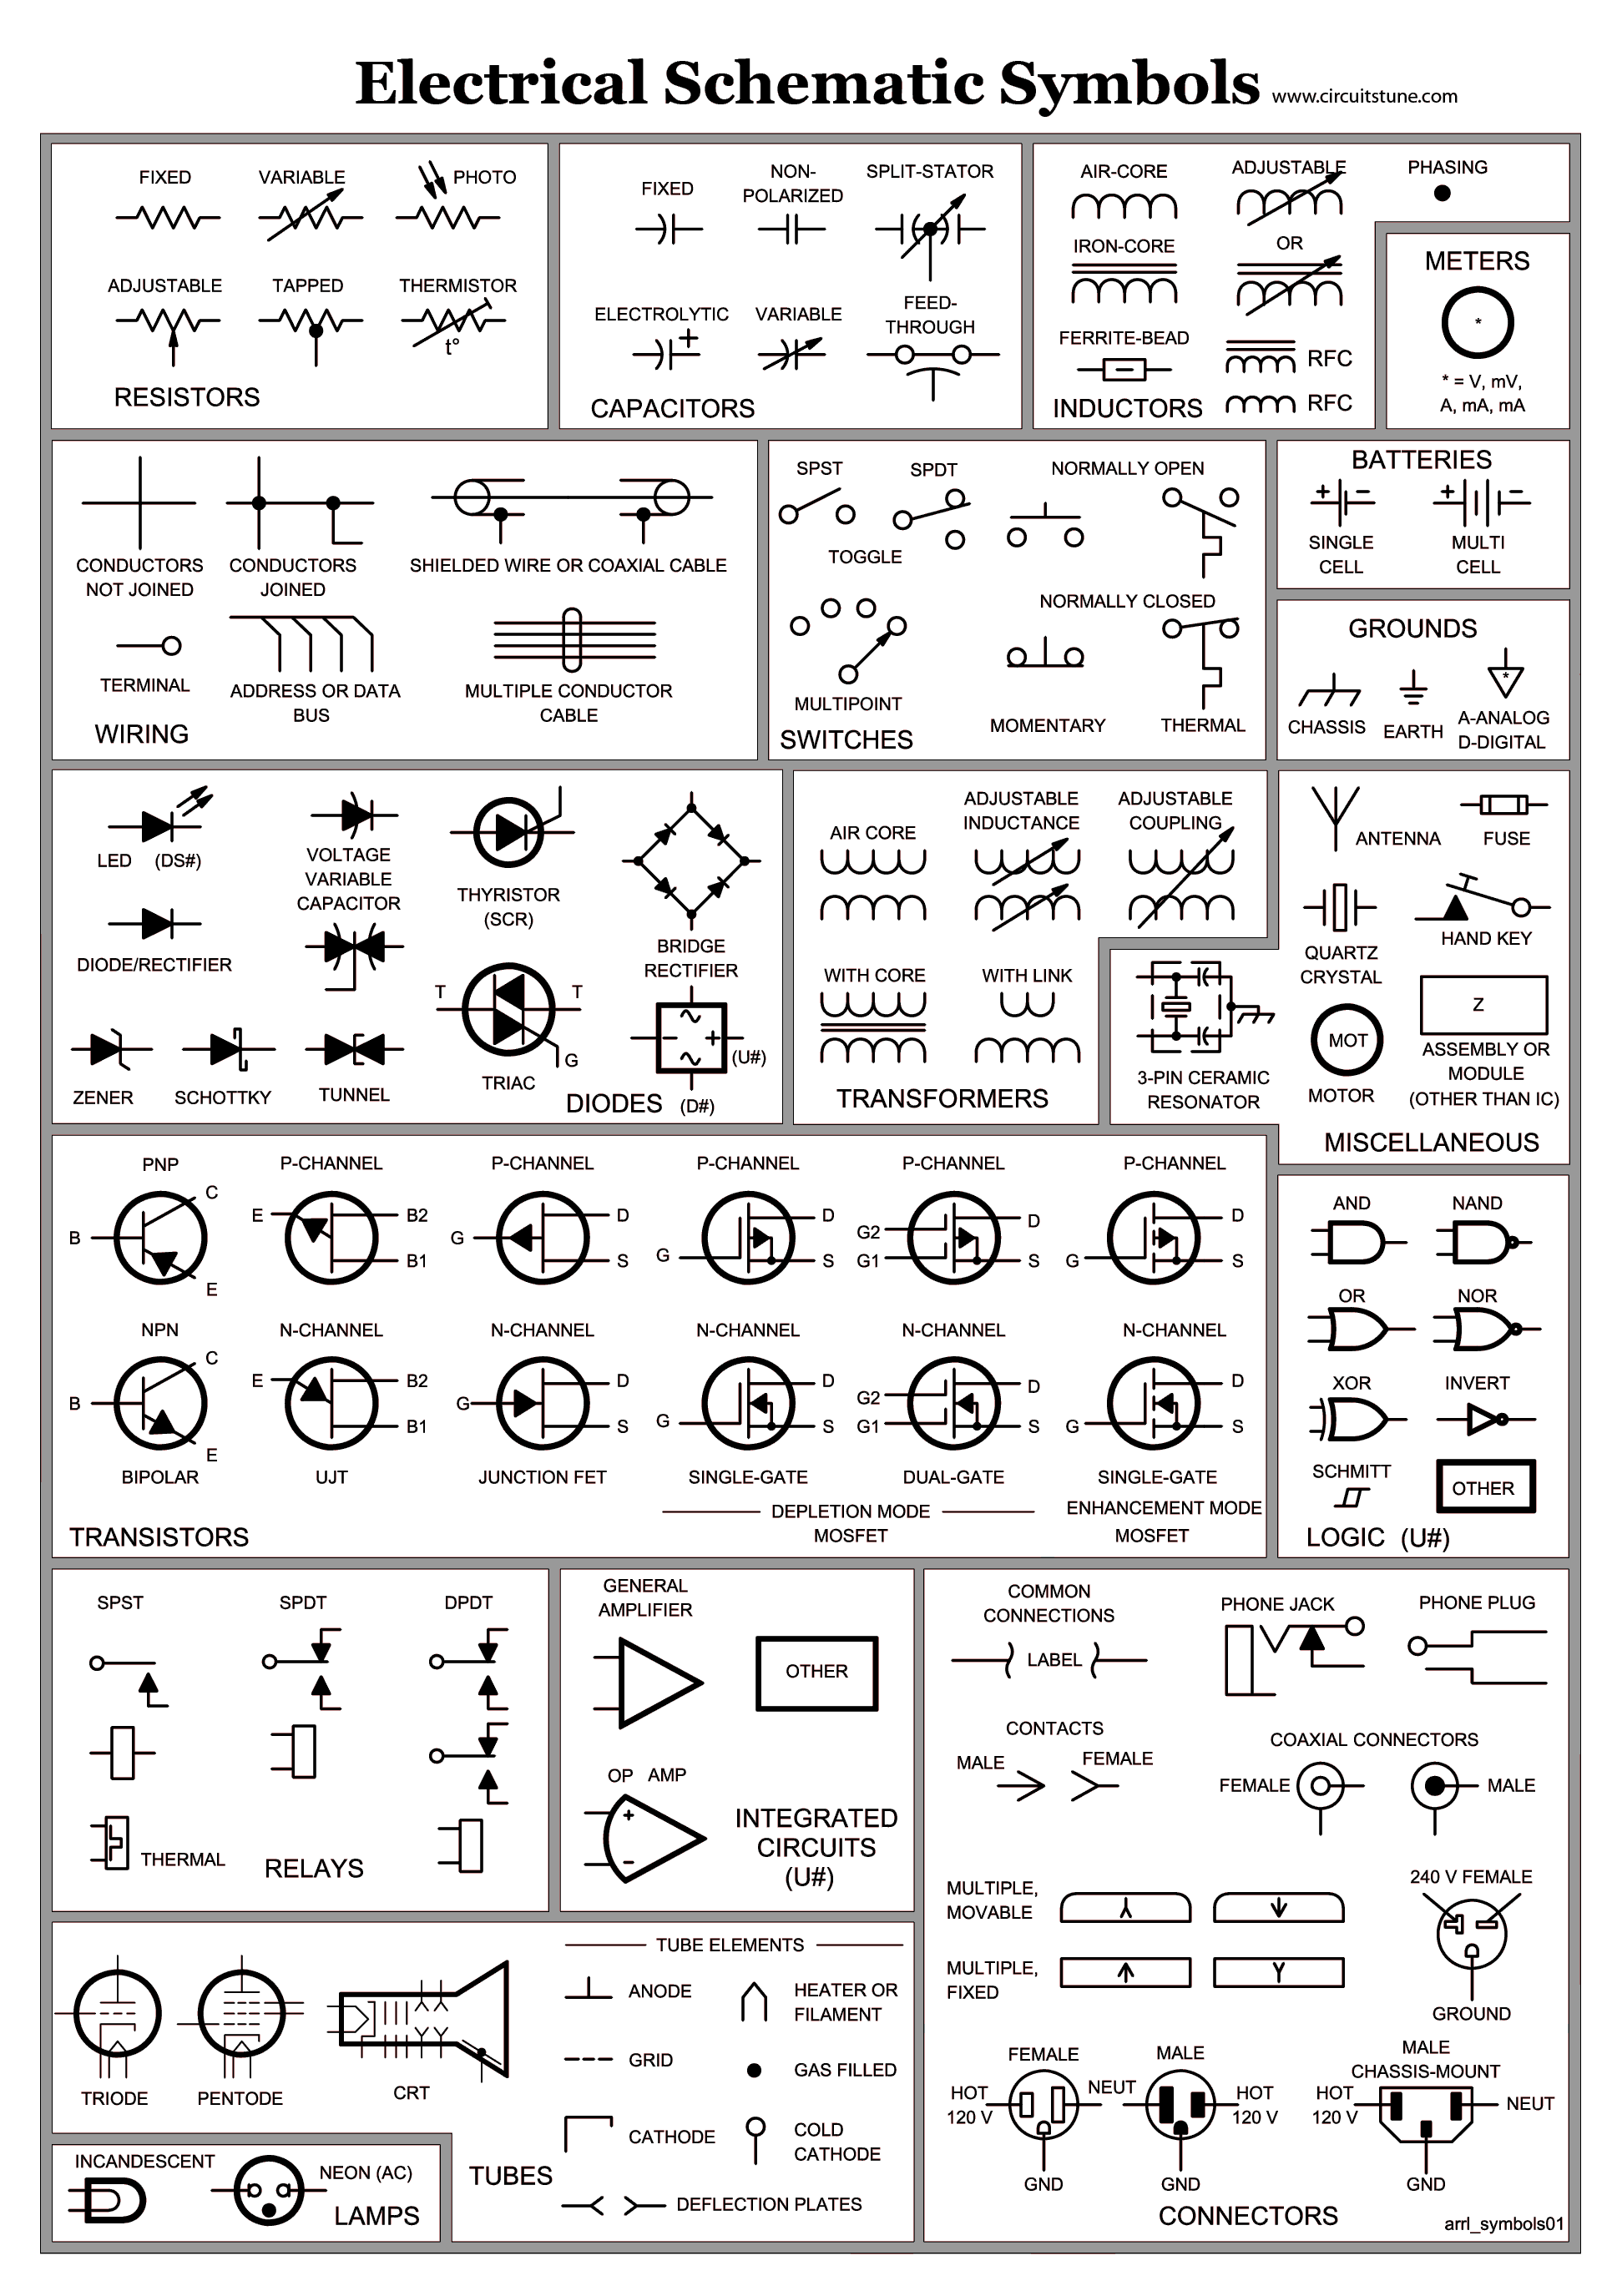 a65d176364692d2ebe913b58a654cfc3 electrical schematic symbols wire diagram symbols automotive wiring diagram symbols pdf at crackthecode.co